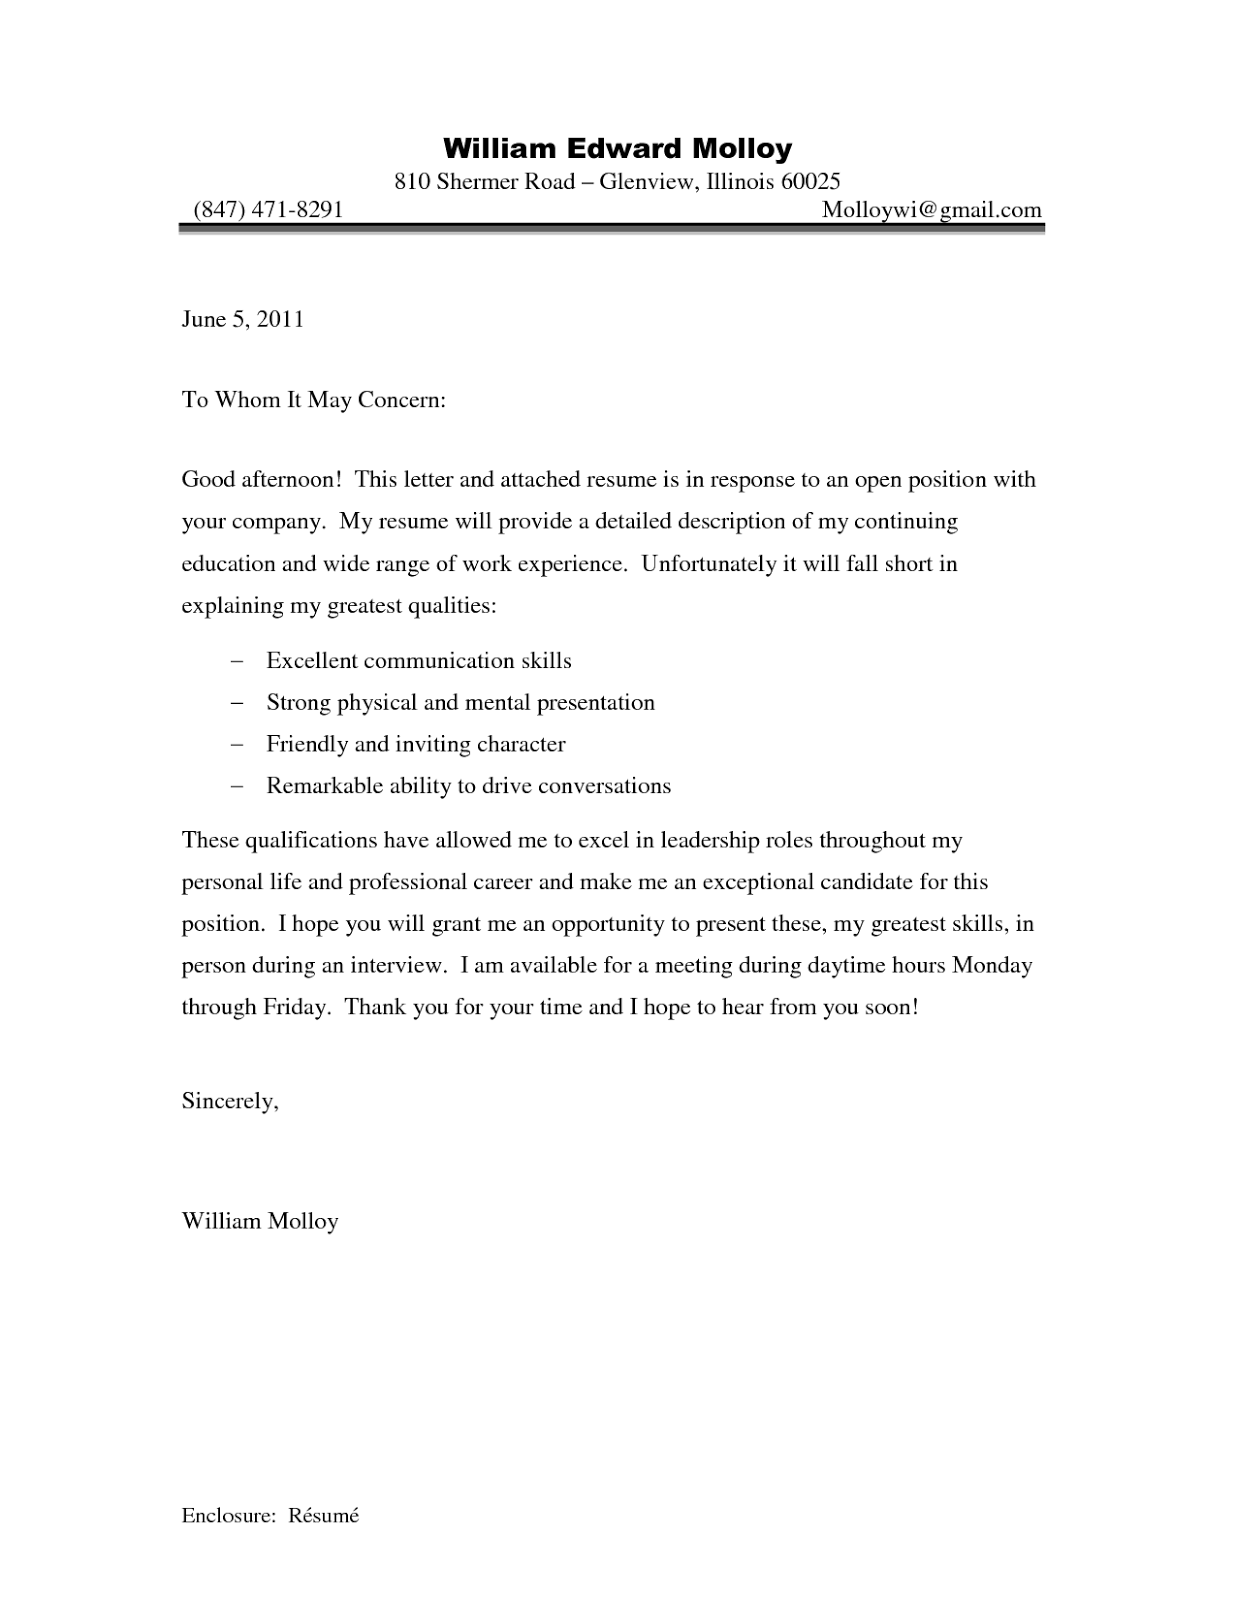 succesful cover letters - effective cover letter samples latter